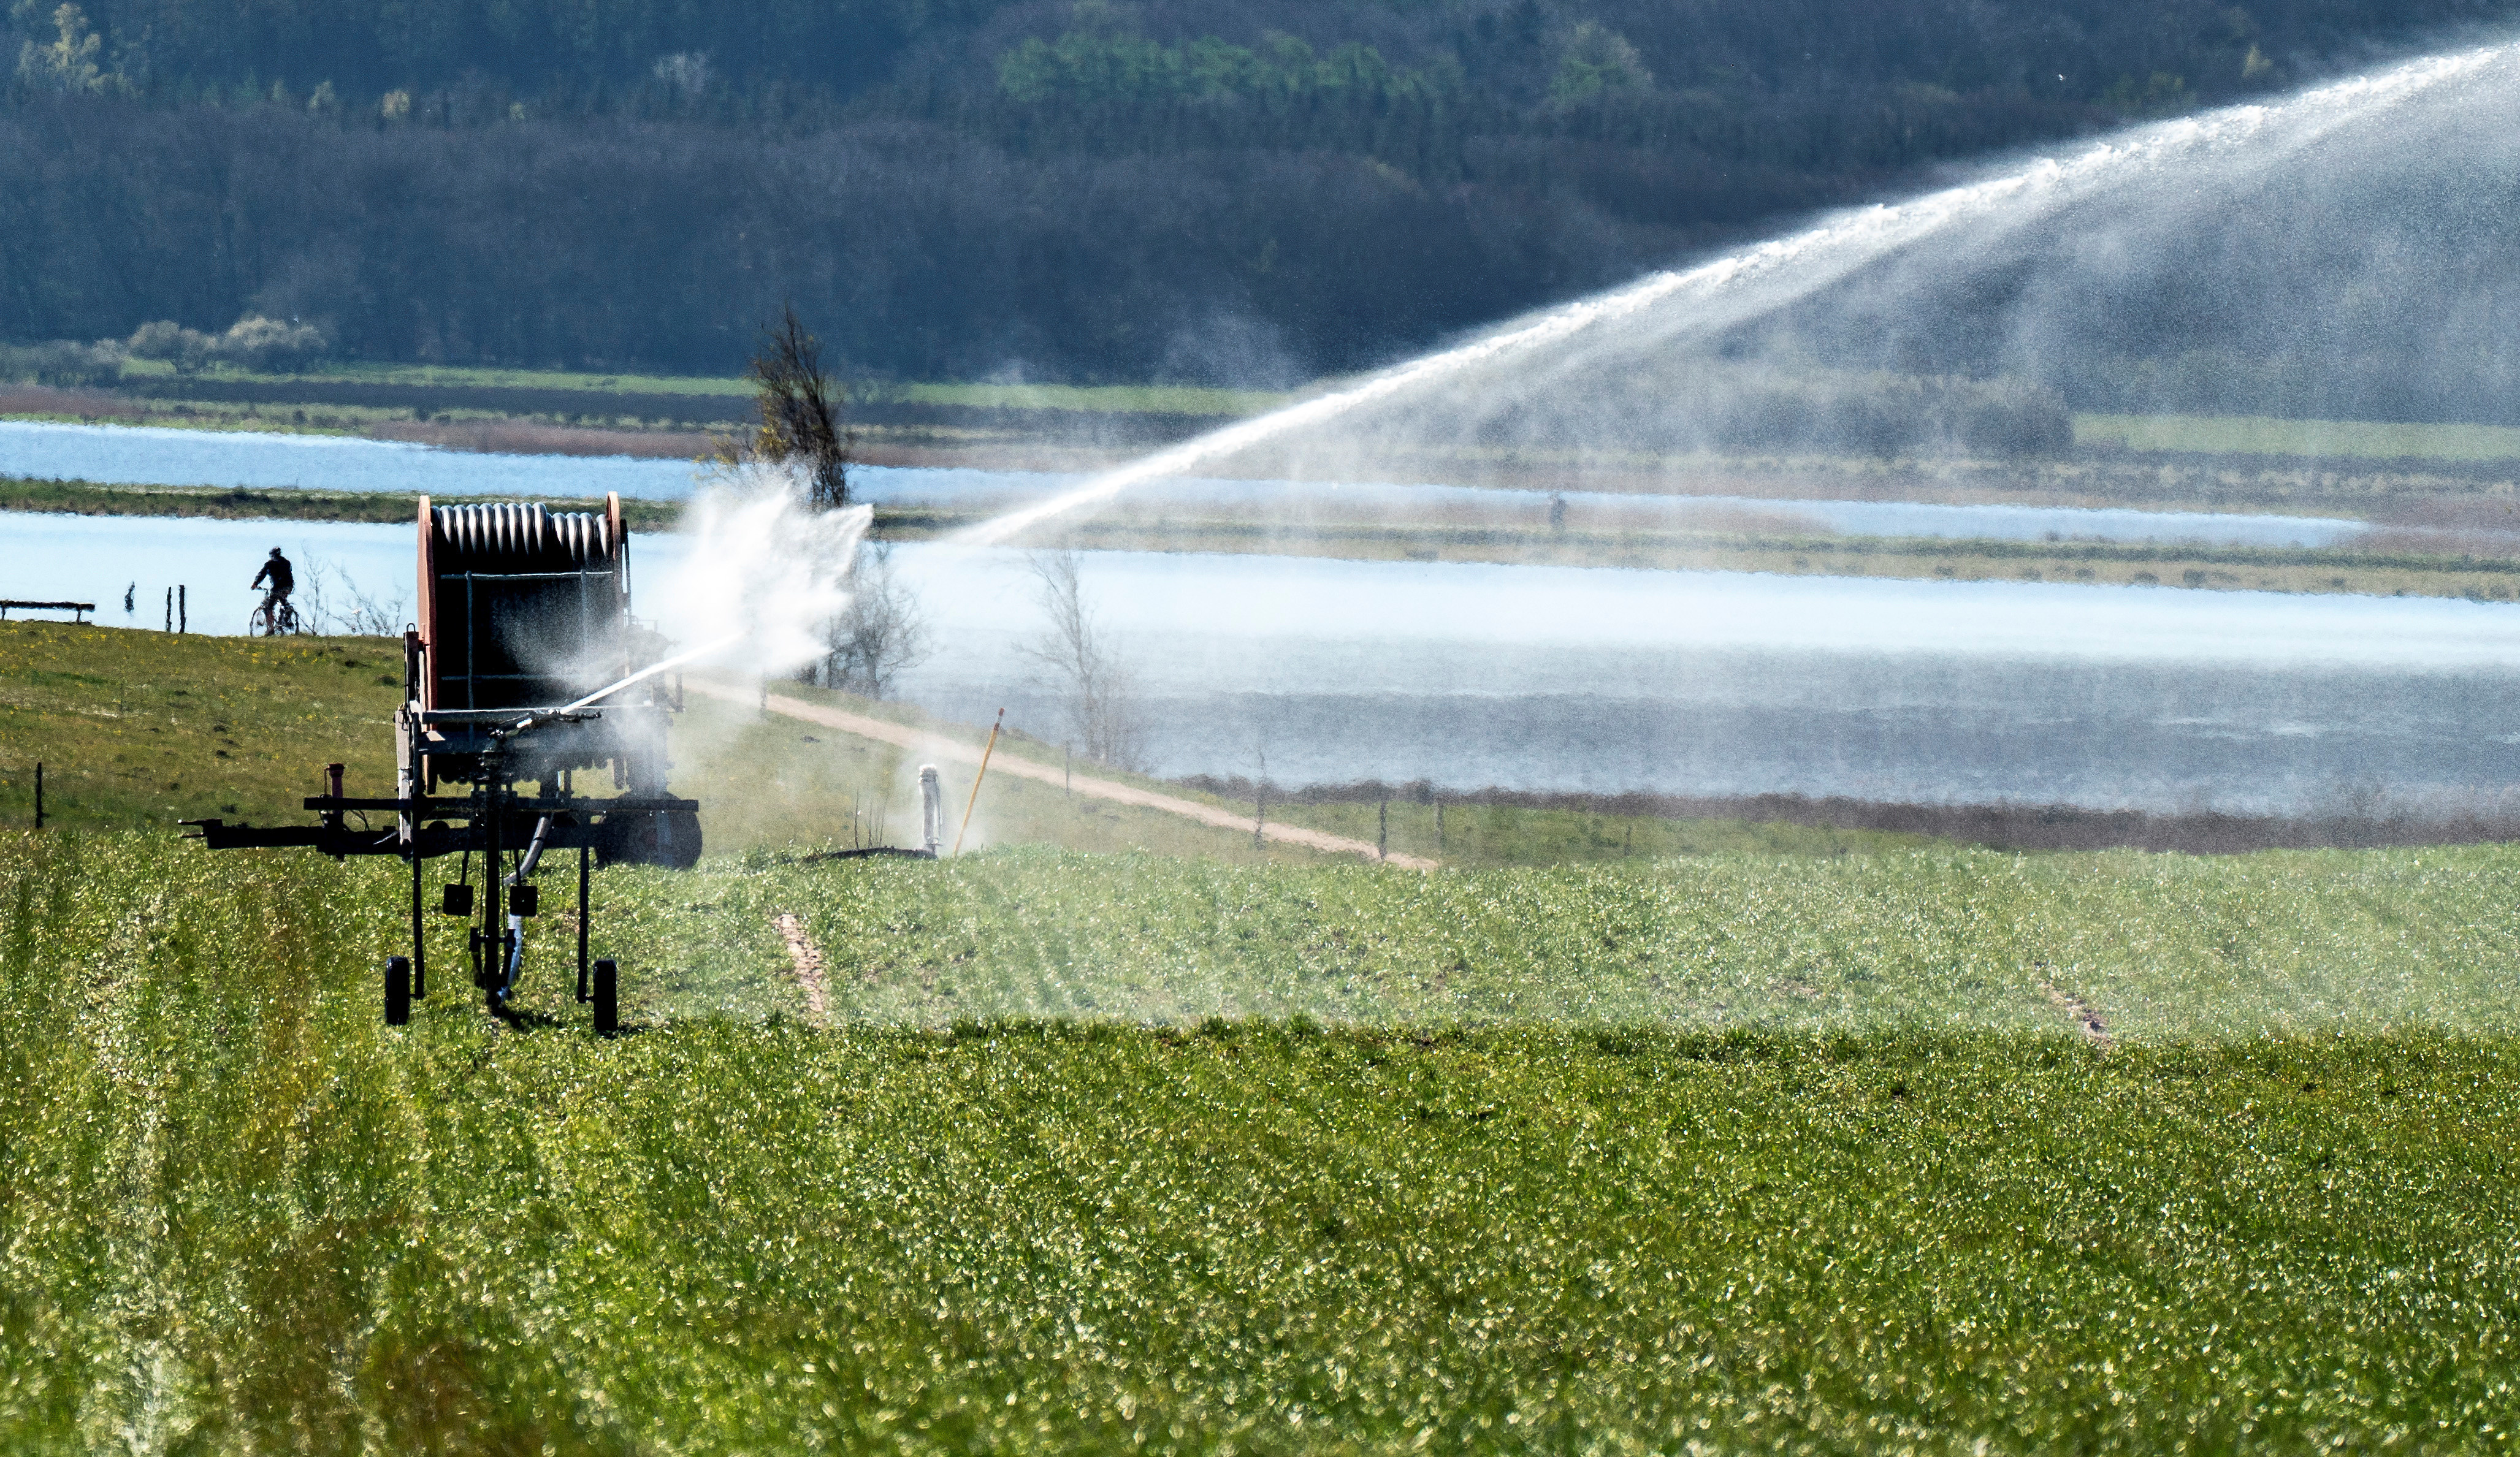 Agriculture is leading illegal water extraction across the world.